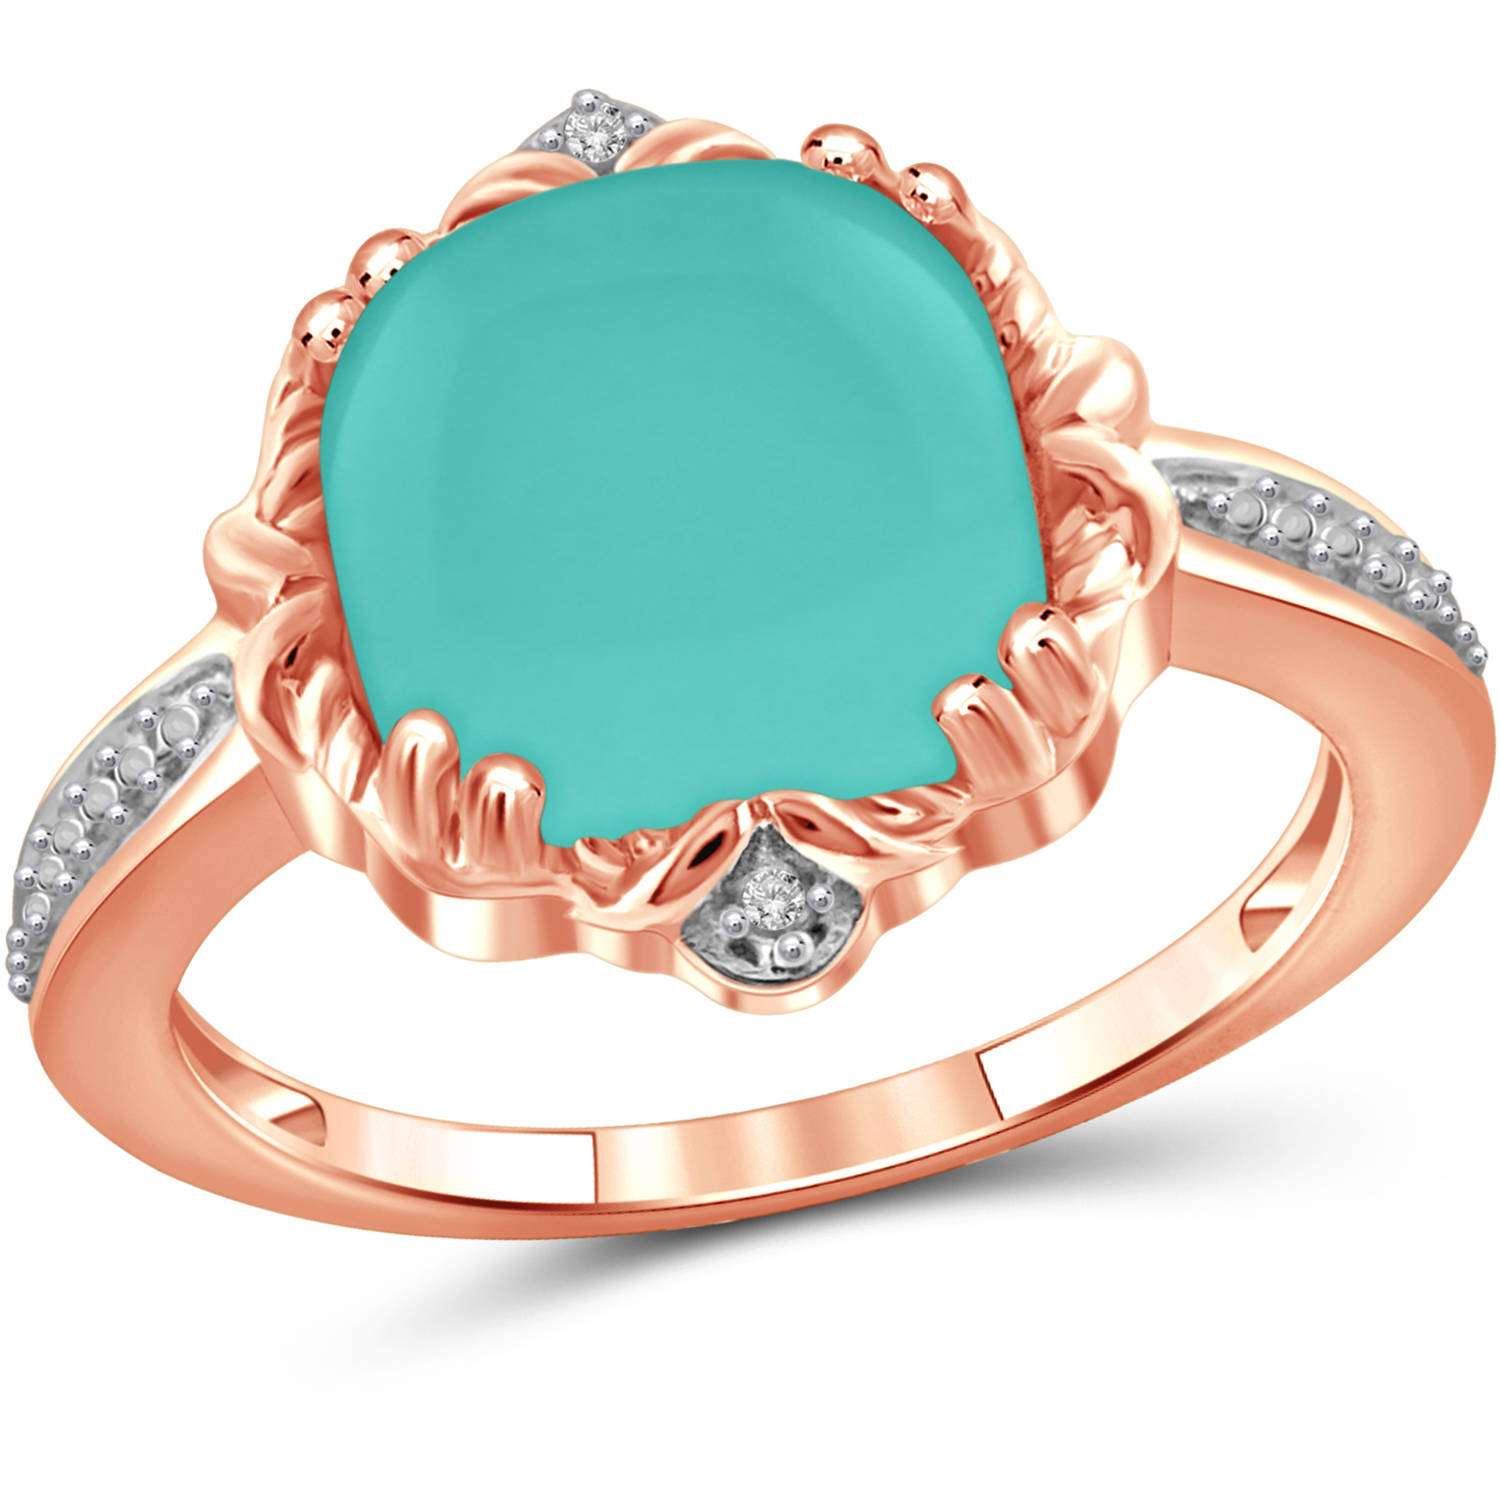 JewelersClub 4-1 2 Carat T.G.W. Chalcedony and White Diamond Accent Rose Gold over Silver Fashion Ring by JewelersClub